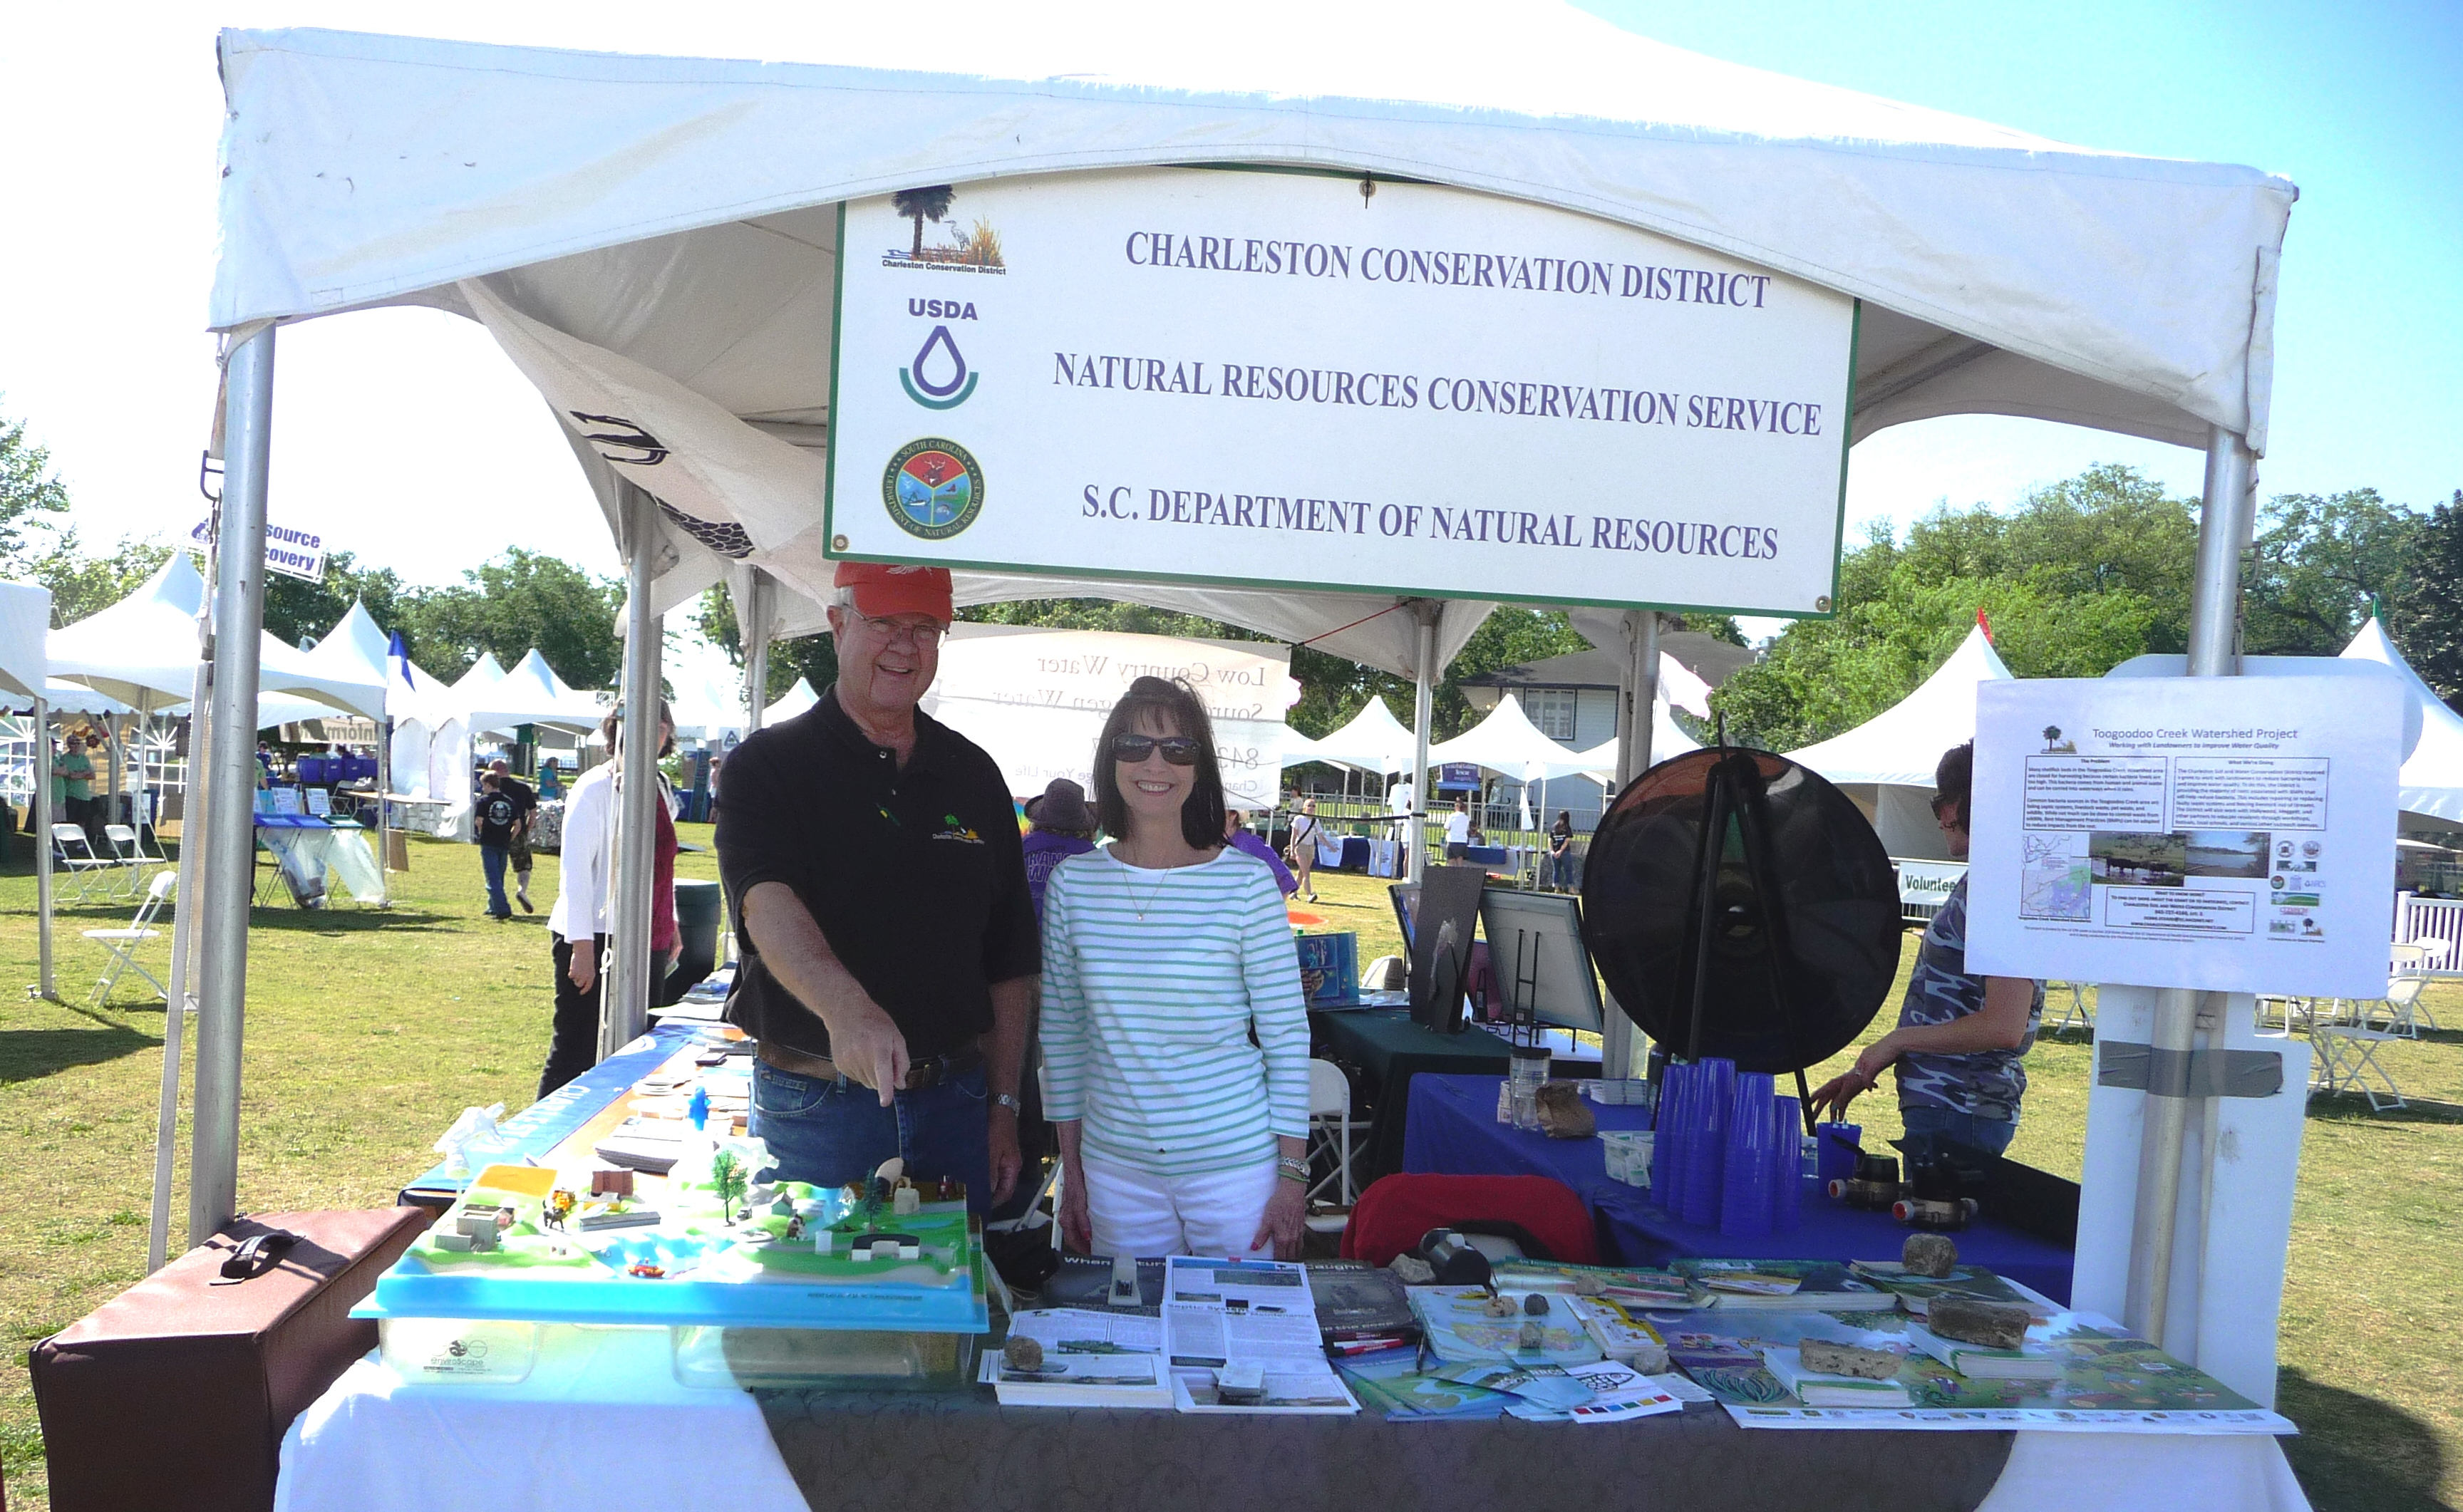 charleston soil and water conservation district environmental and education outreach